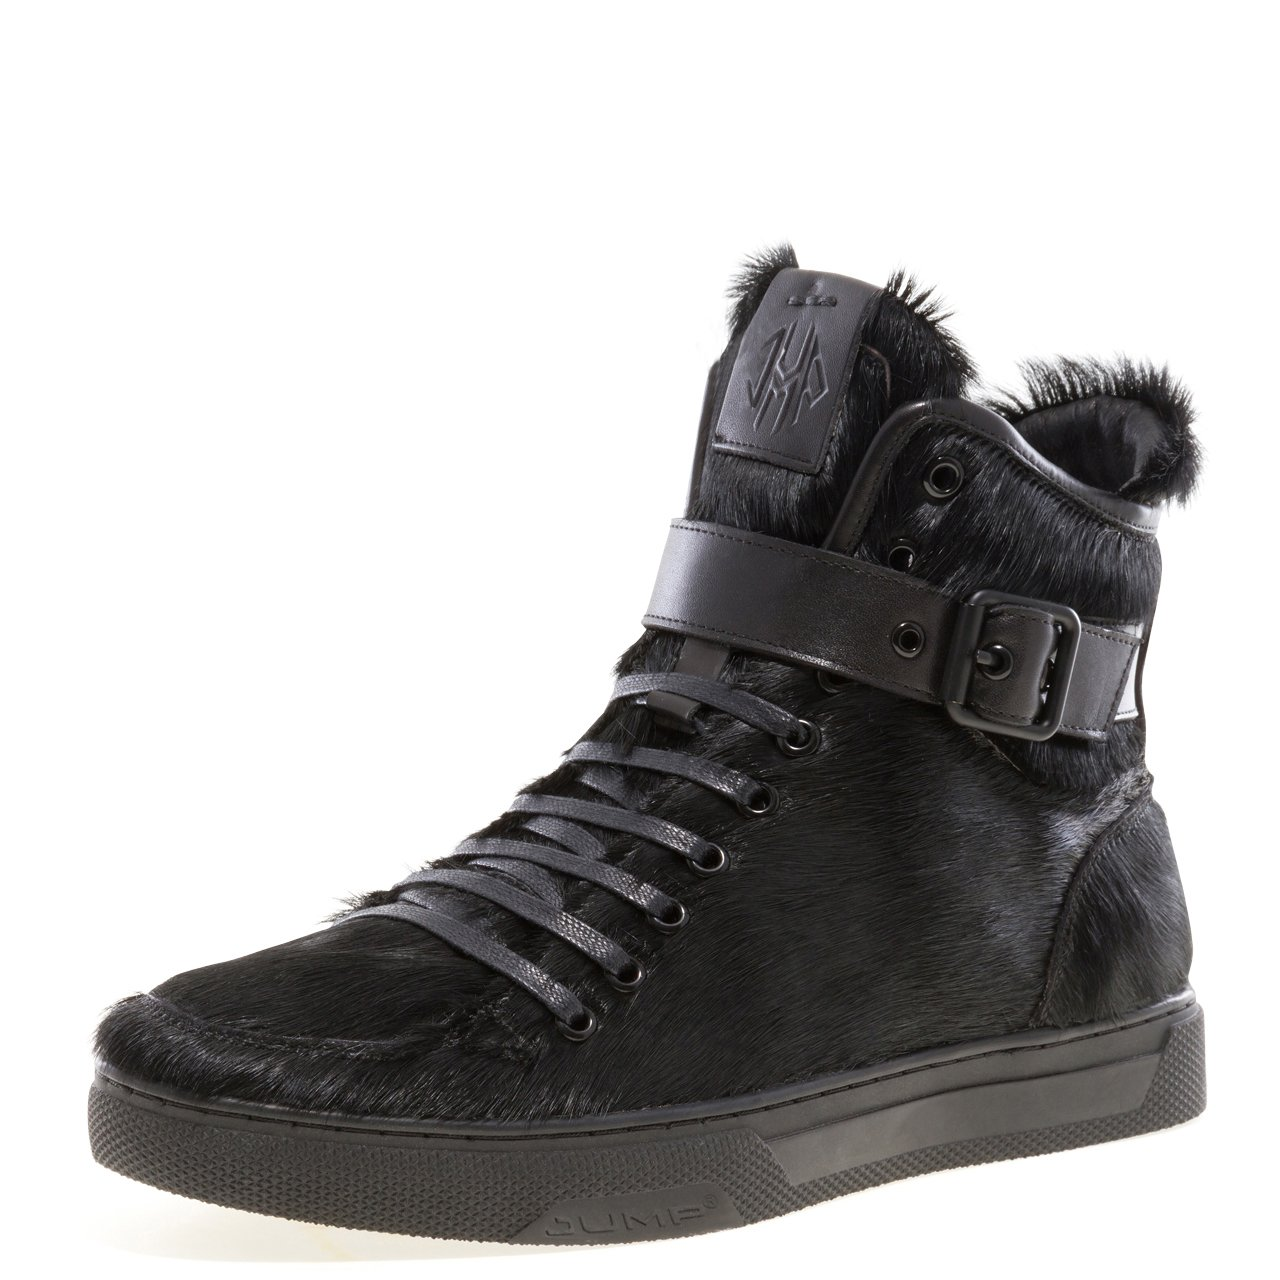 JUMP NEWYORK Men's Sullivan Round Toe Hand-Painted Leather Lace-Up Inside Zipper and Strap High-Top Sneaker Black Fur 13 D US Men